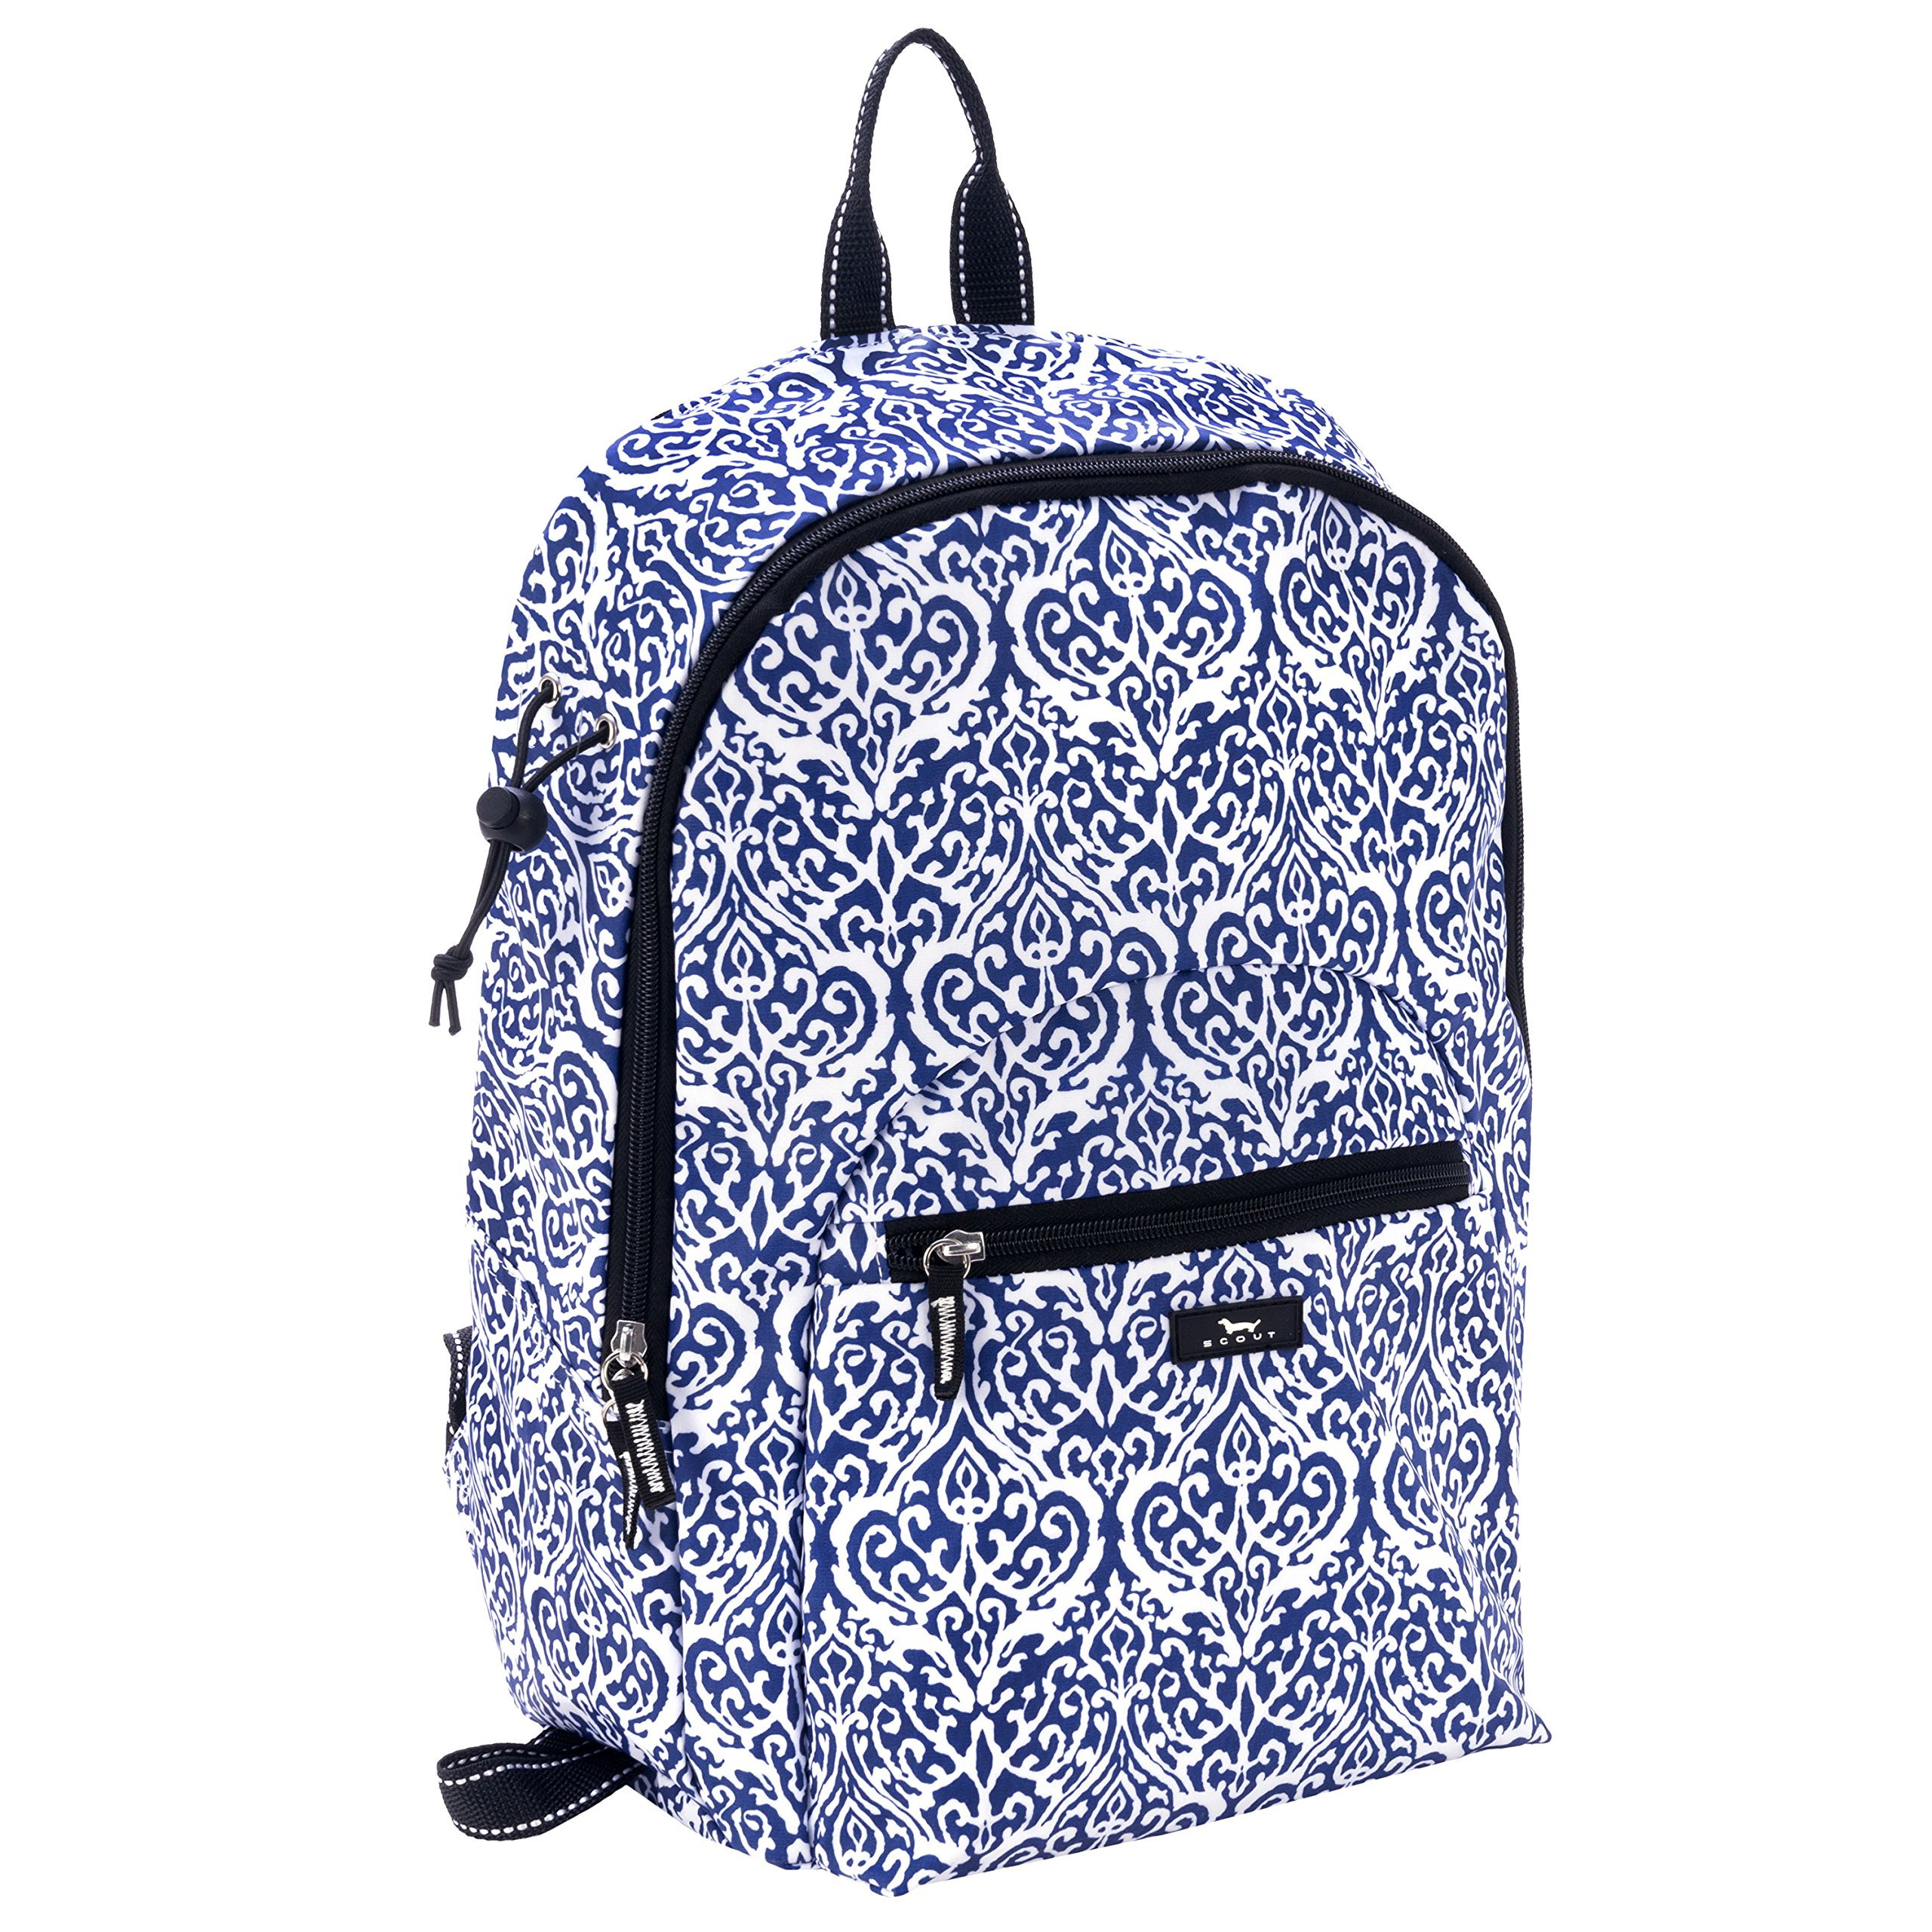 SCOUT Big Draw Backpack School Bag, Interior Laptop Sleeve, Padded & Adjustable Straps, Water Resistant, Zips Closed, Royal Highness